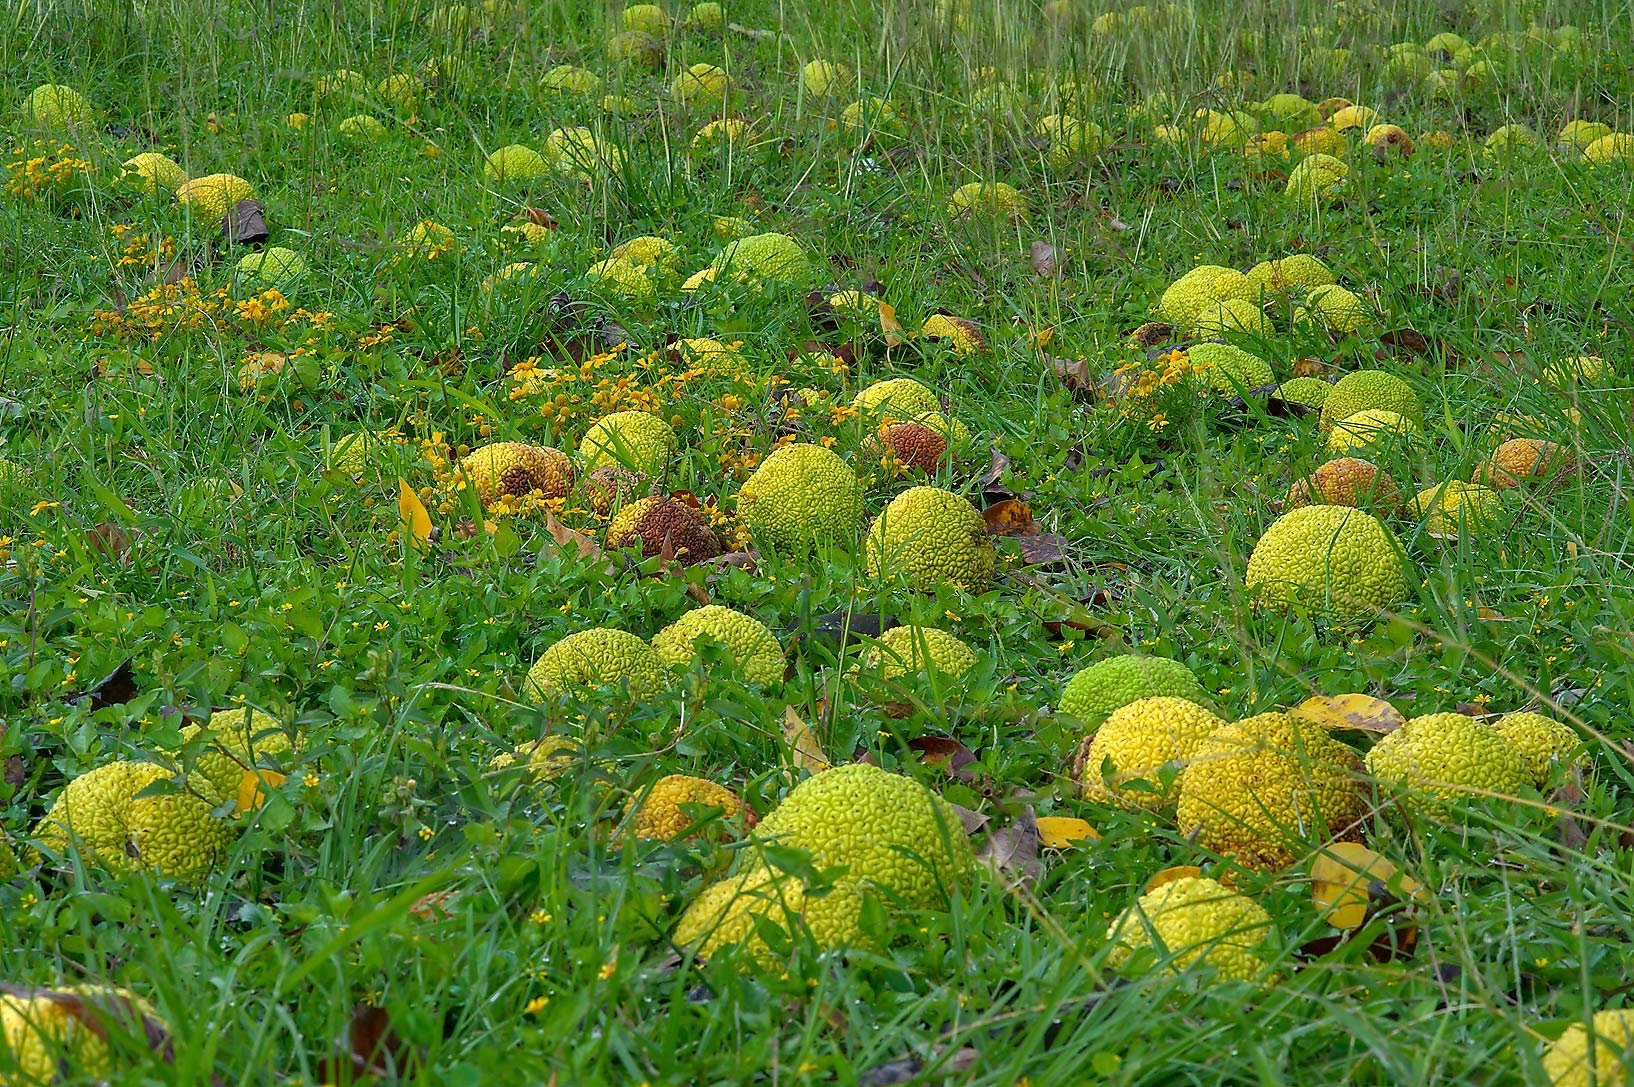 Horse apples (osage orange) on a lawn in Lemontree Park. College Station, Texas